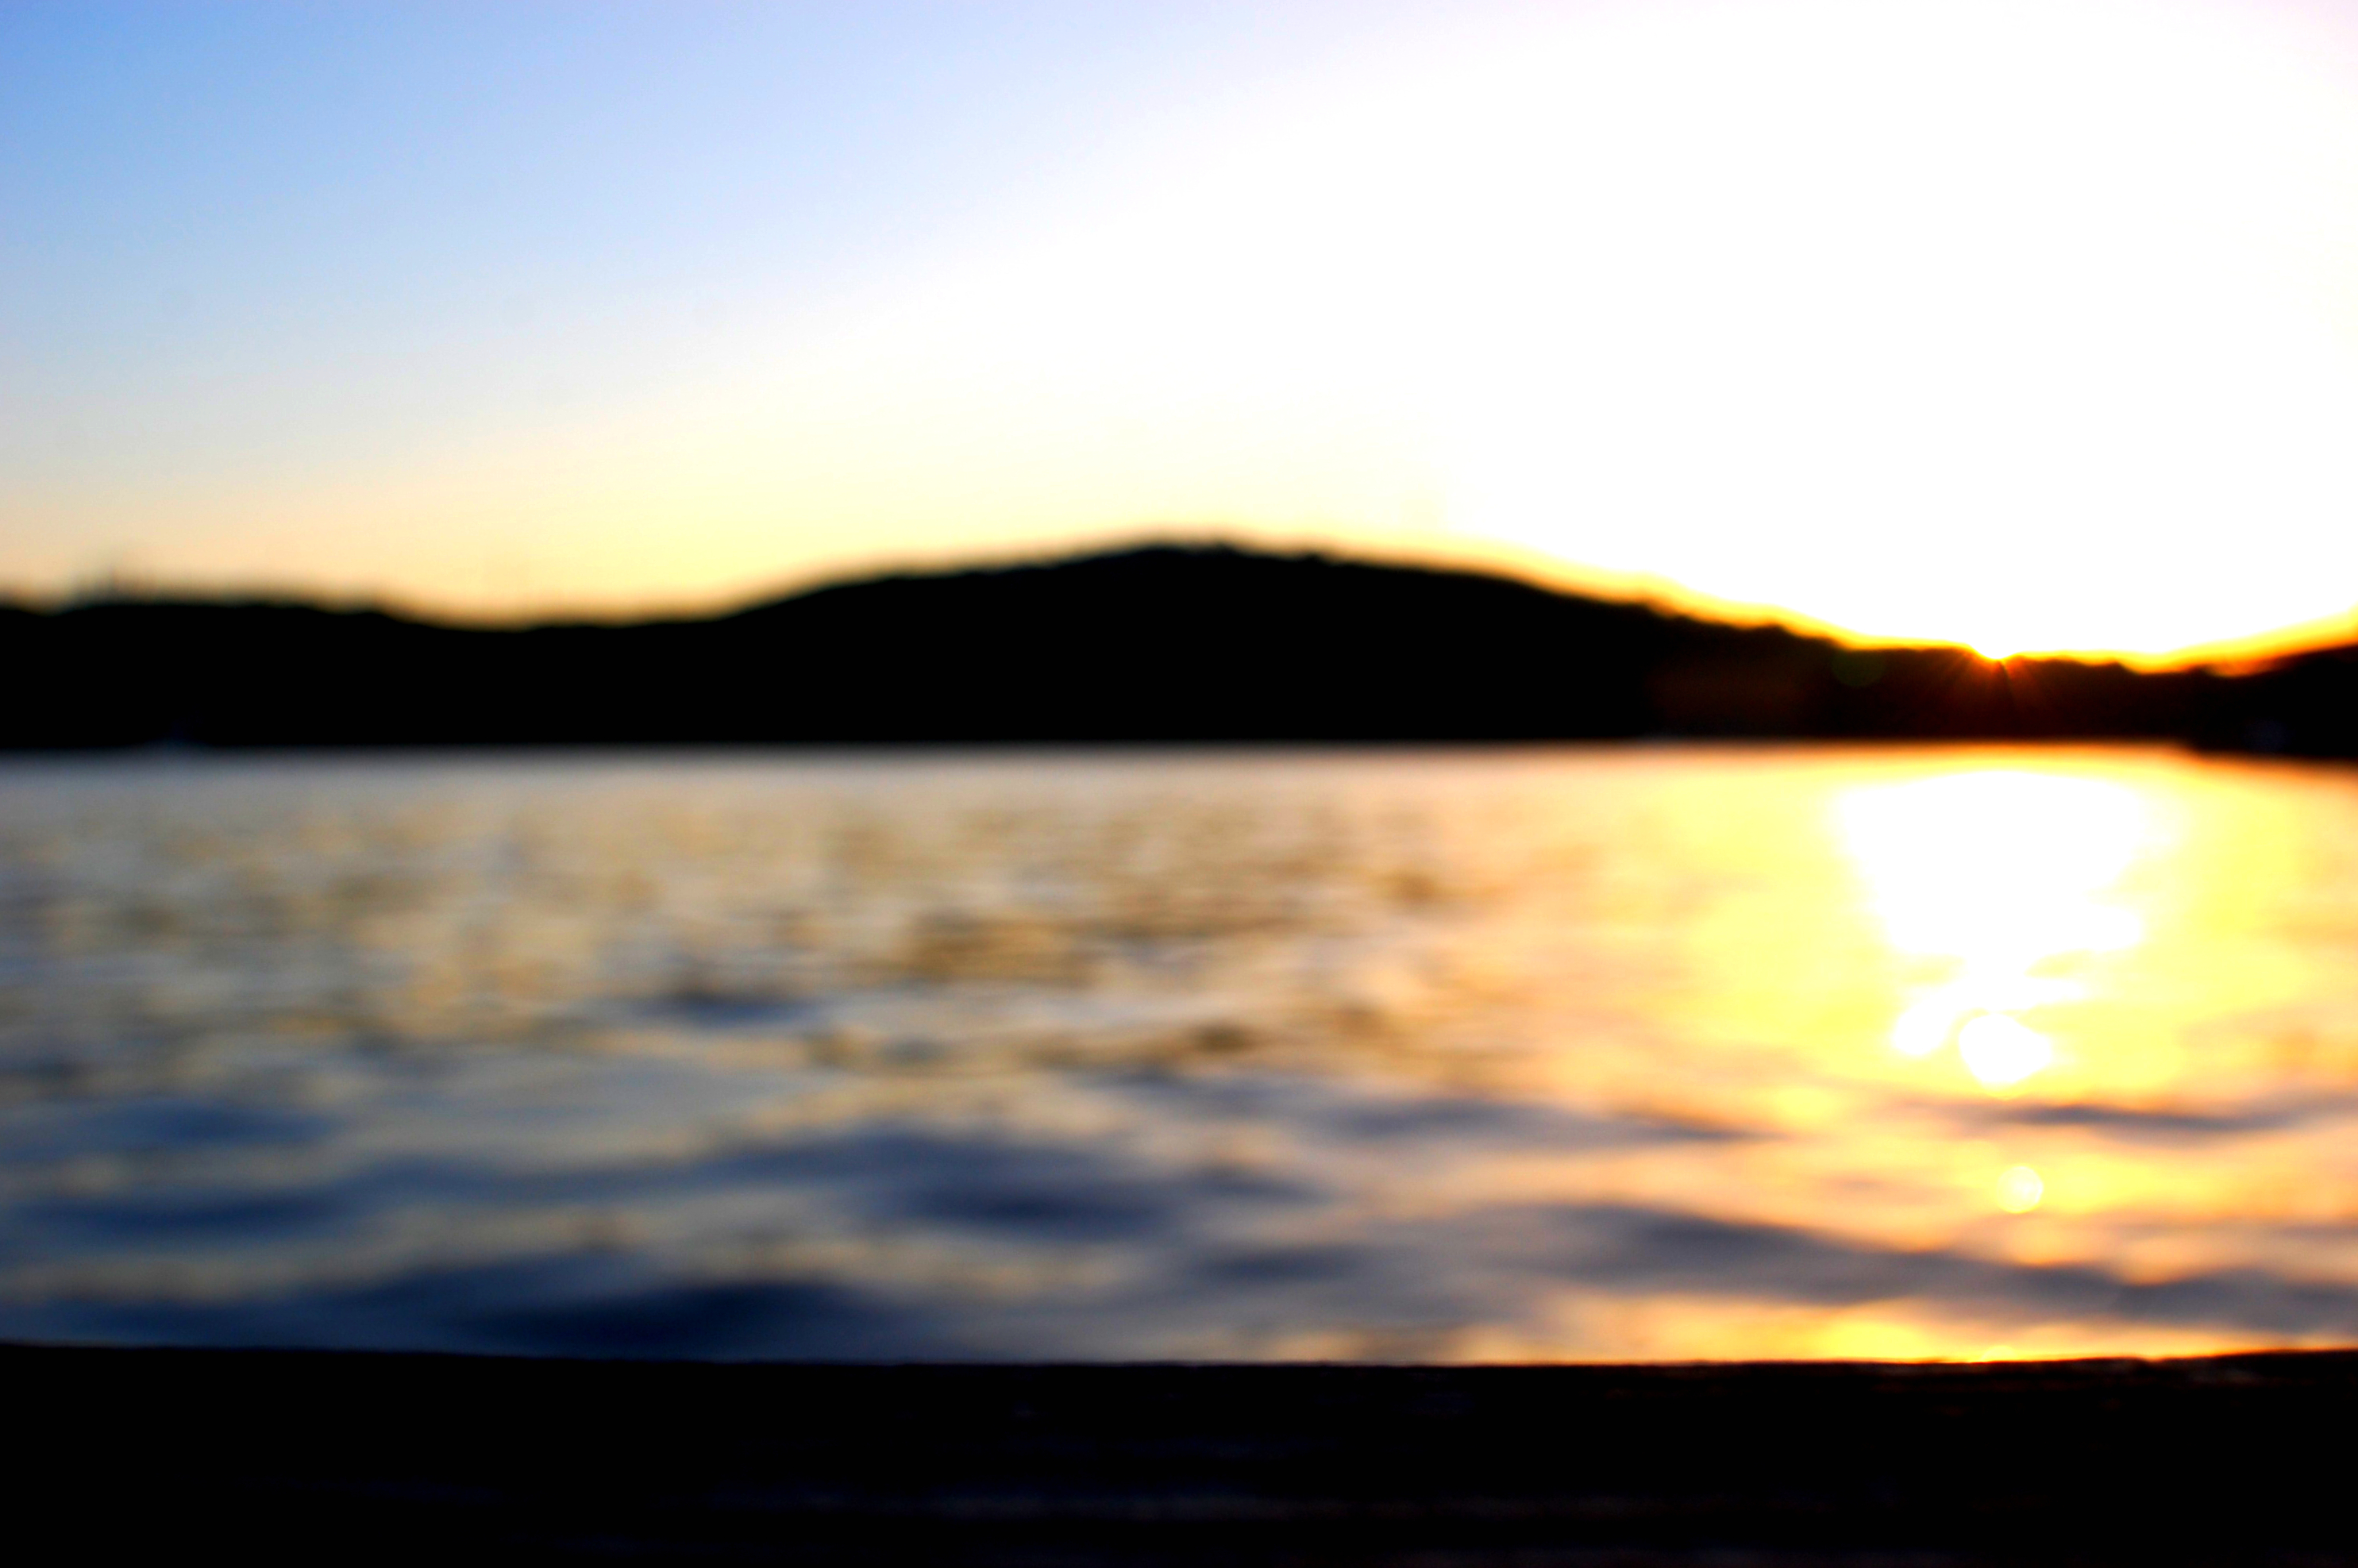 sunset over water-1